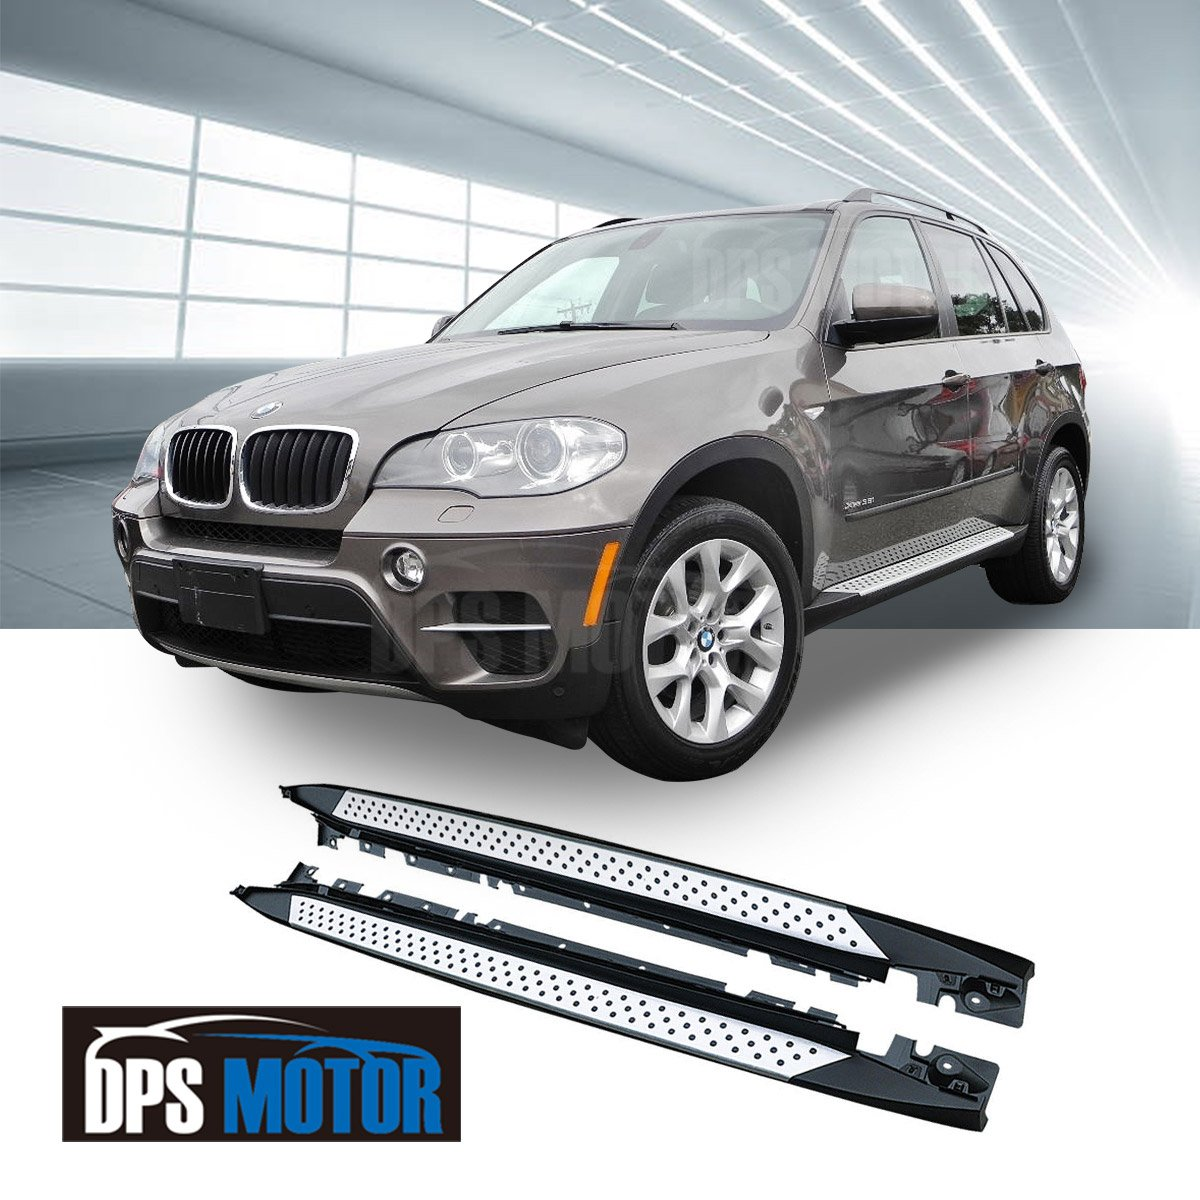 2008 And X5 And Bmw And Nerf And Running Board: For 07-13 BMW E70 X5 OE Factory Style Aluminum Running